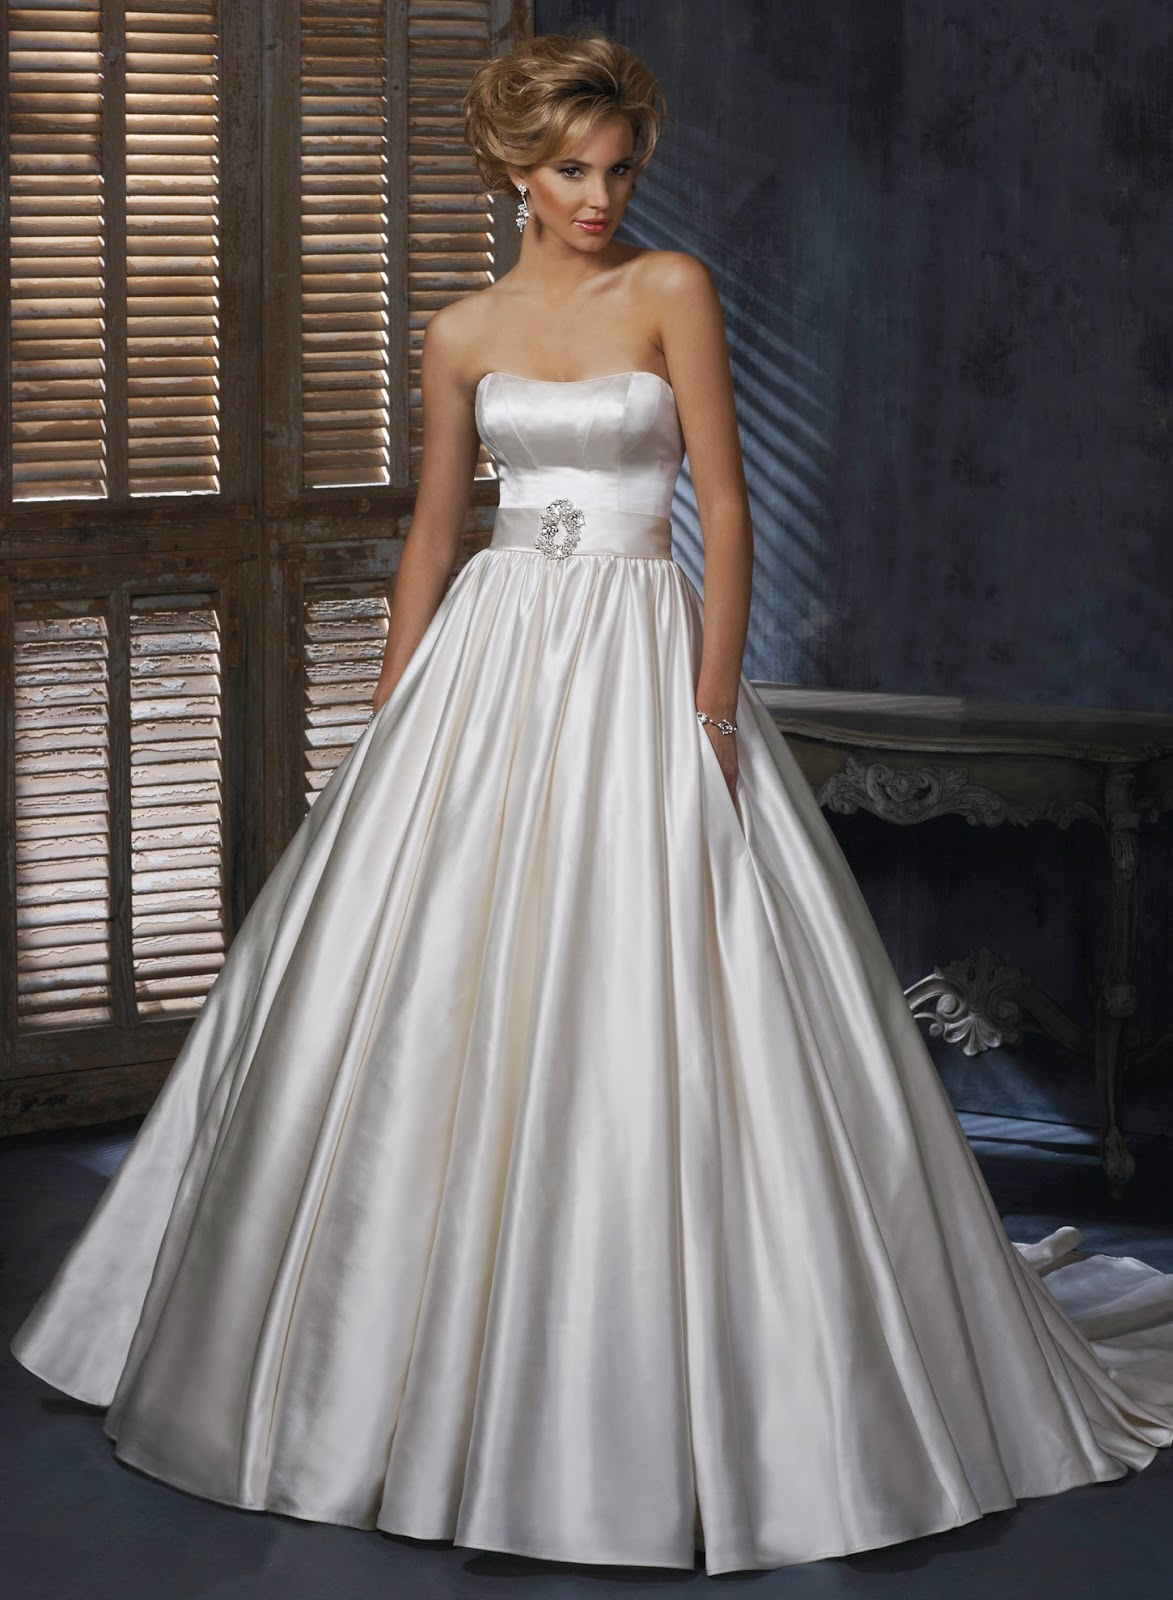 ball gown wedding dress; ball gown wedding dresses; satin ball gown wedding dress; belt wedding dresses